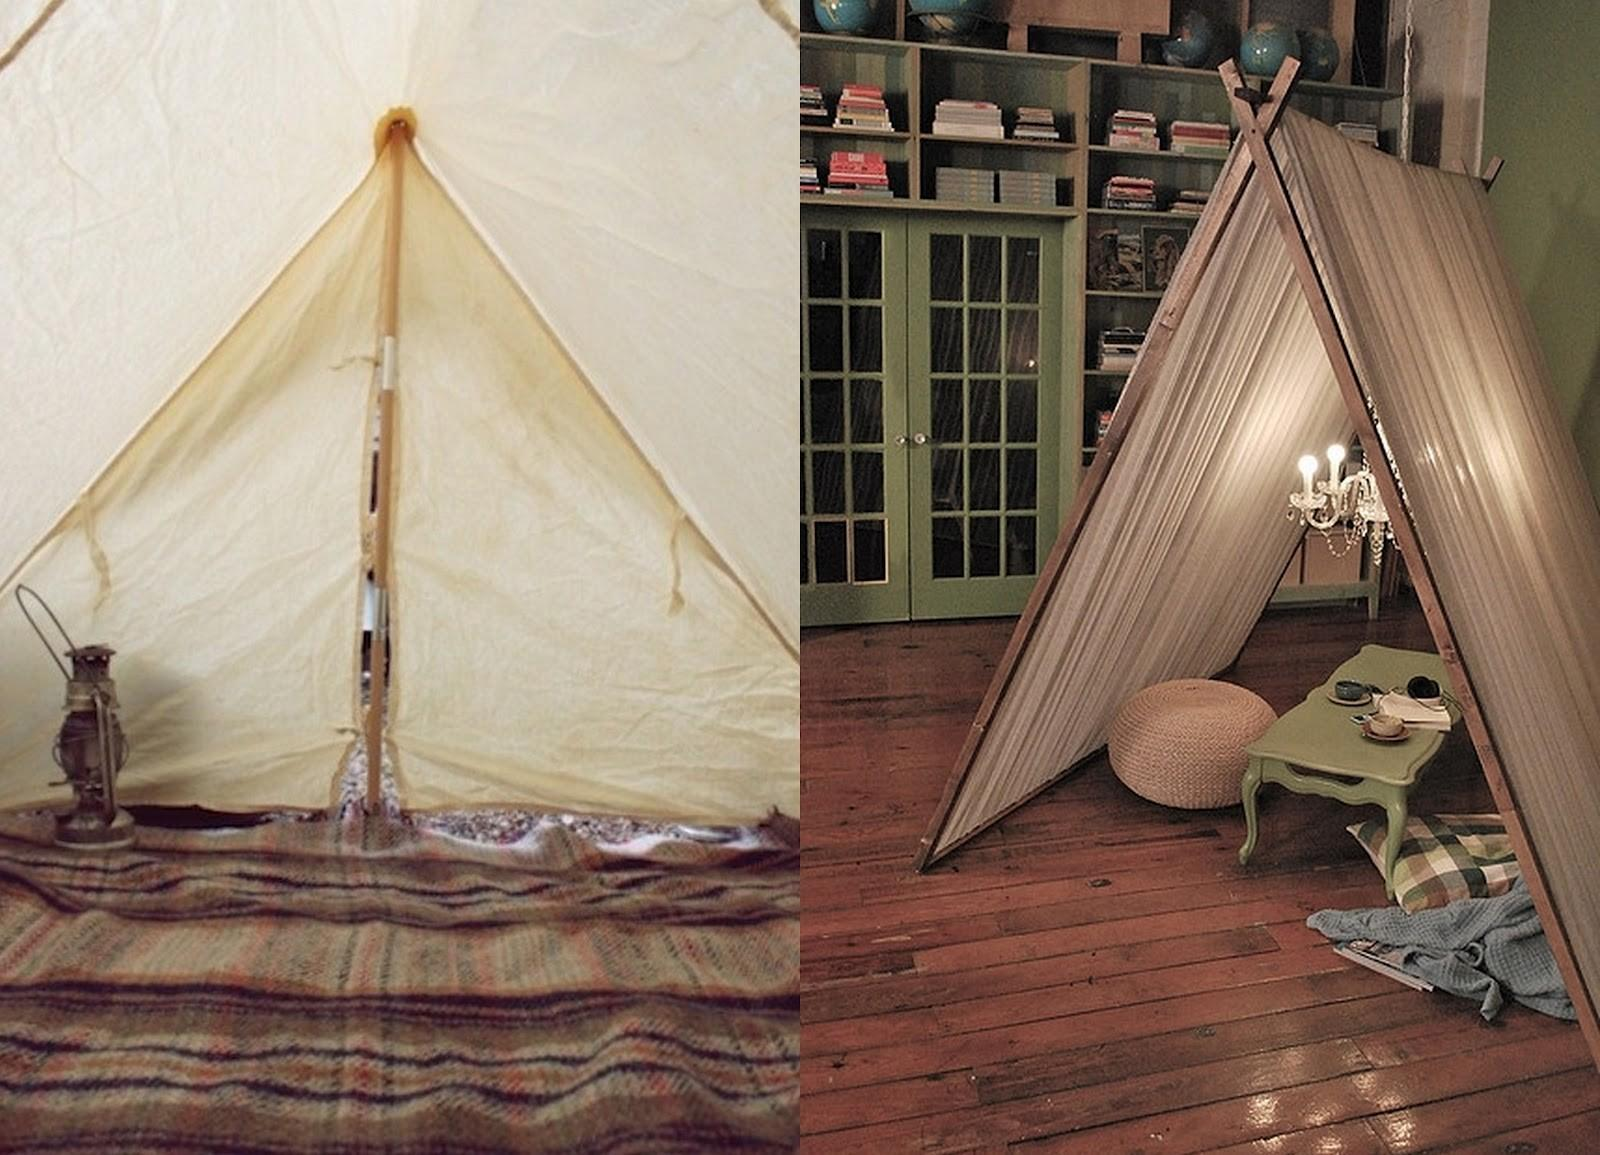 Tents Teepees